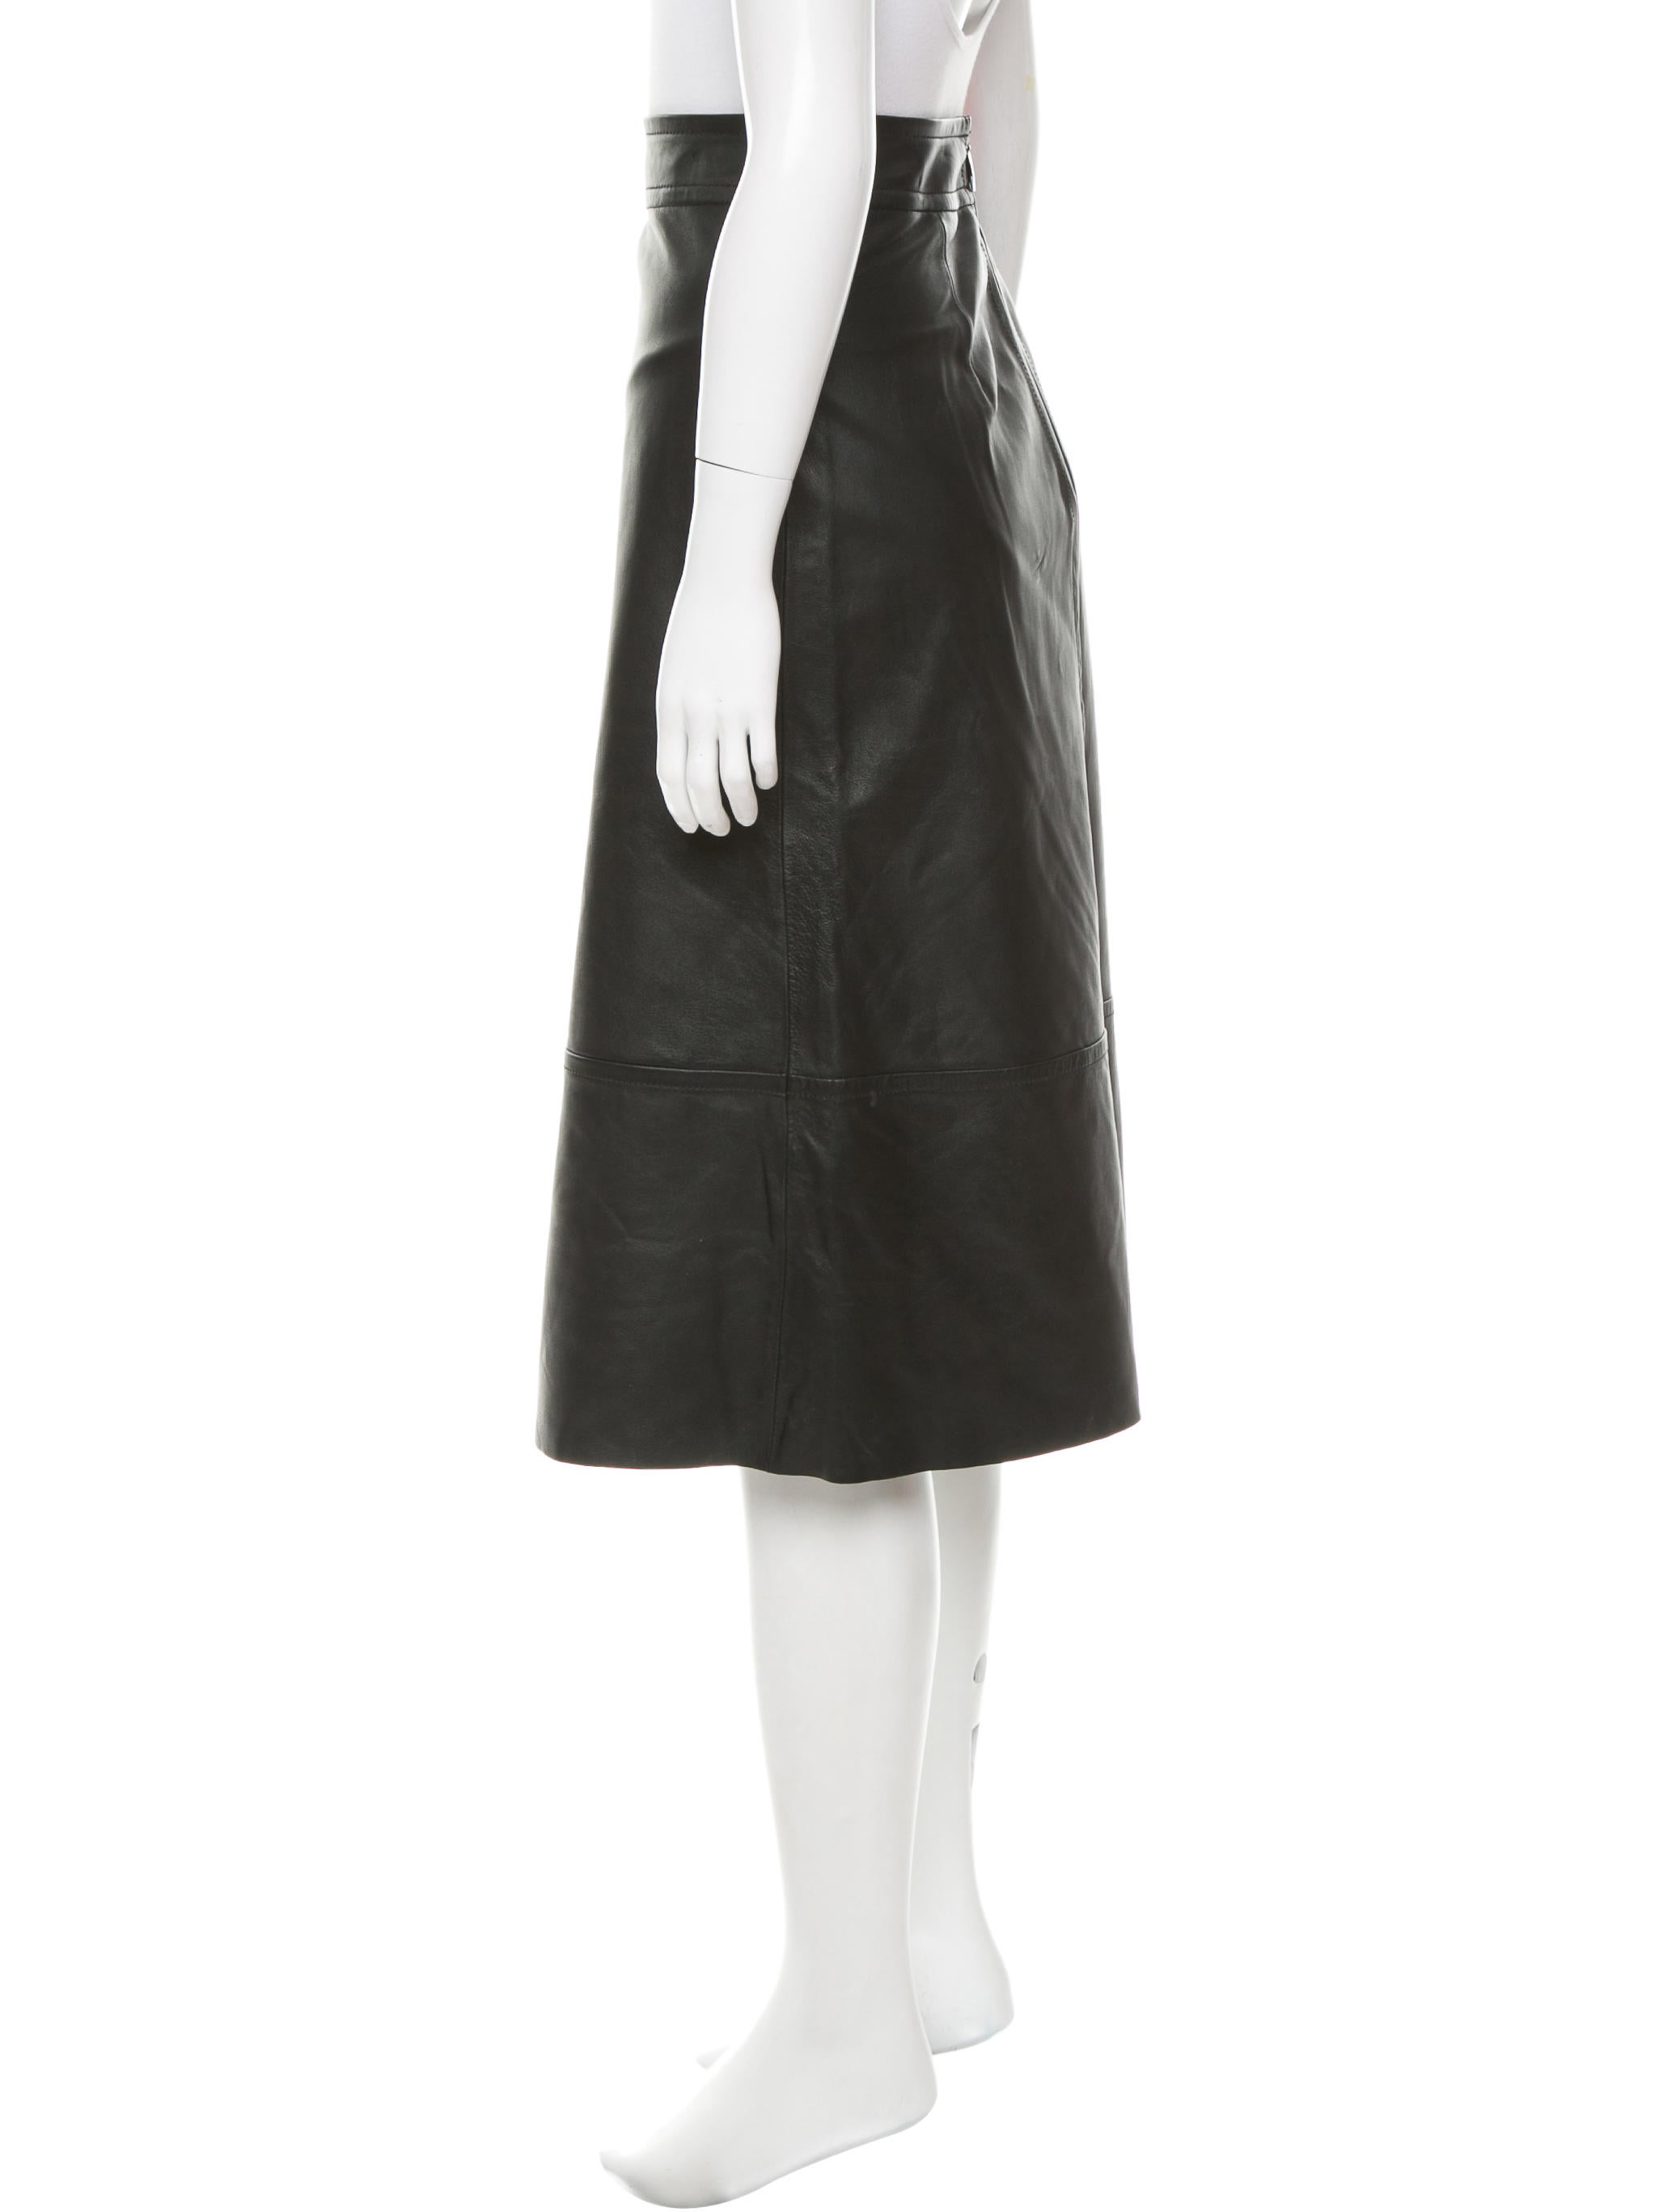 kate spade new york leather mini skirt w tags w tags